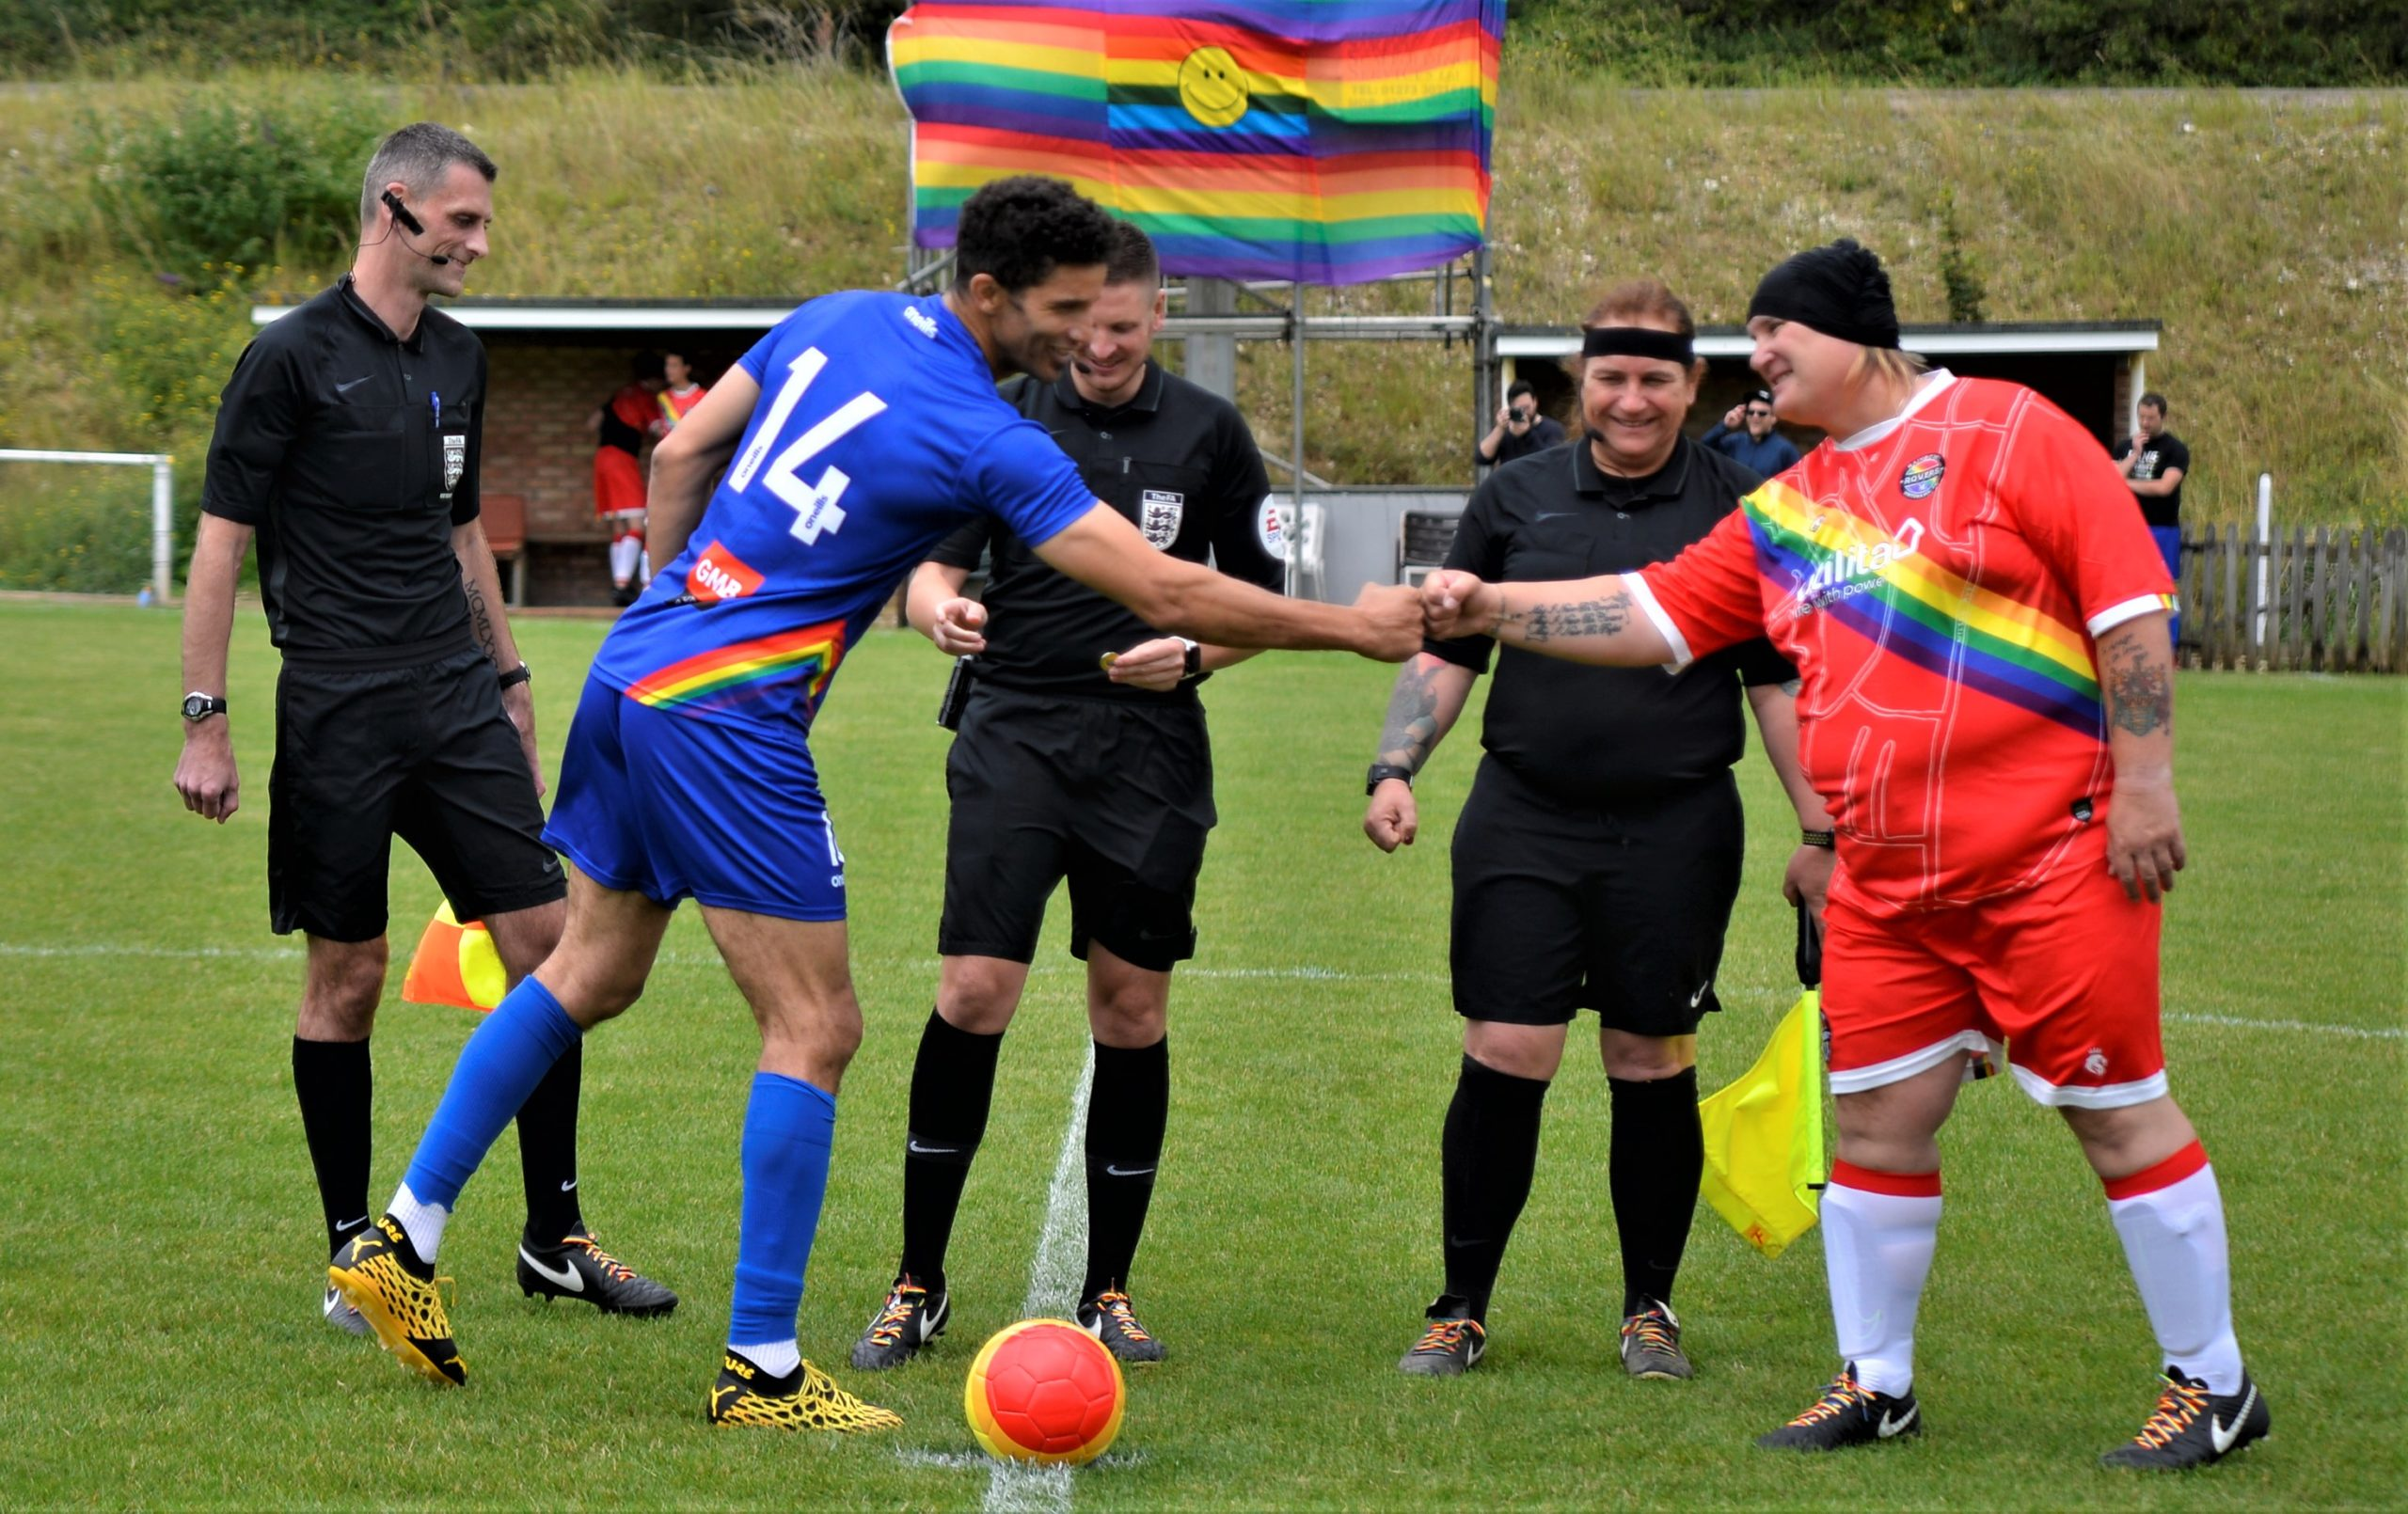 David James and Sophie Cook shake hands in front of officials and the rainbow flag ahead of the second Football United game